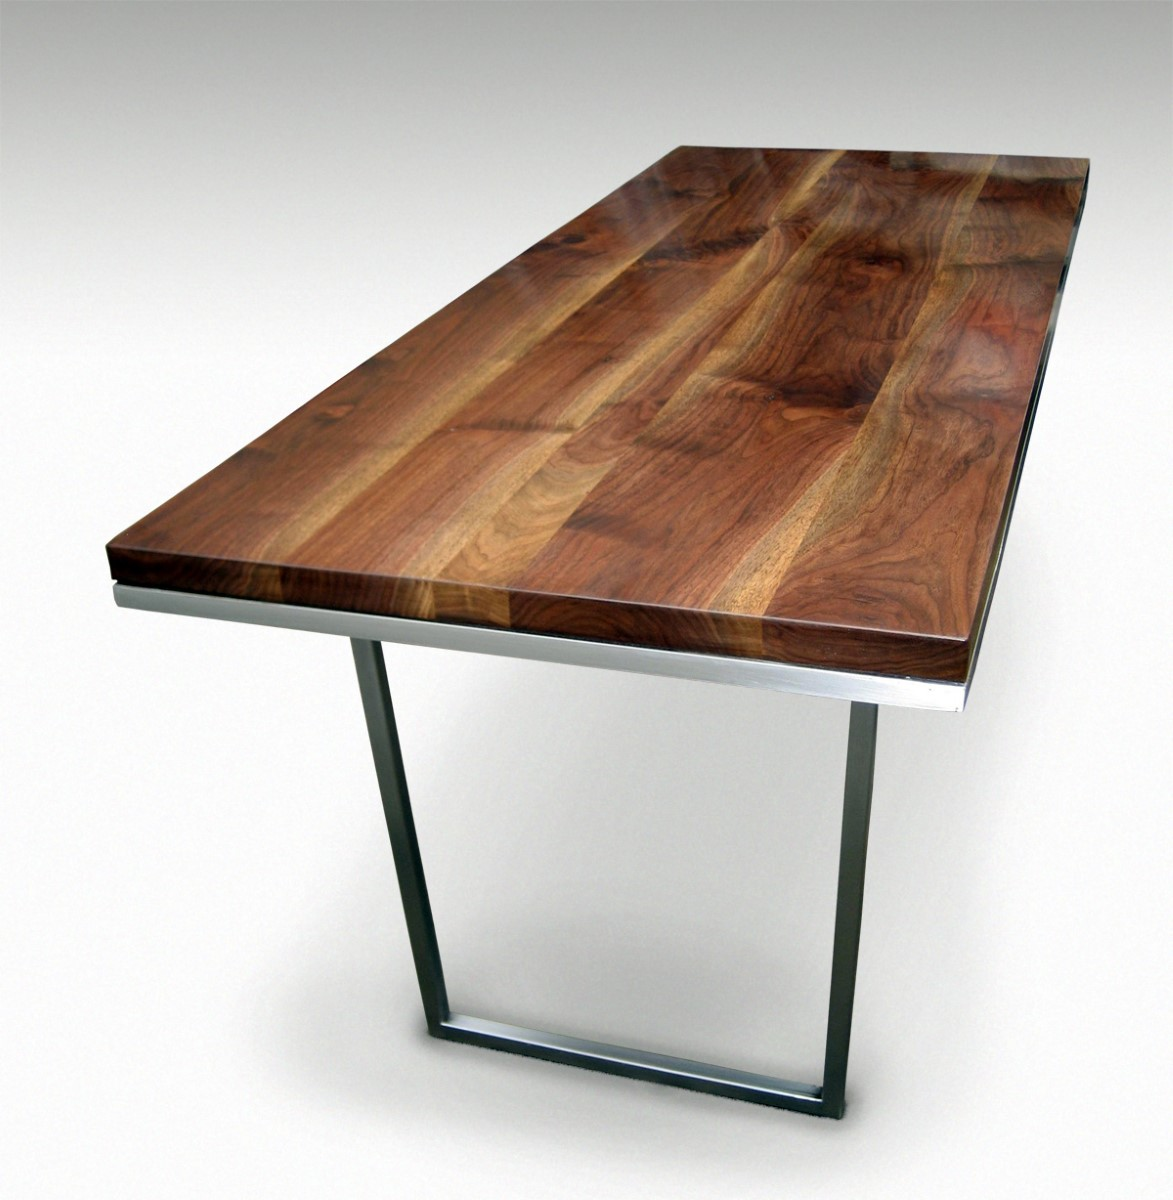 Walnut Dining Table - Solid